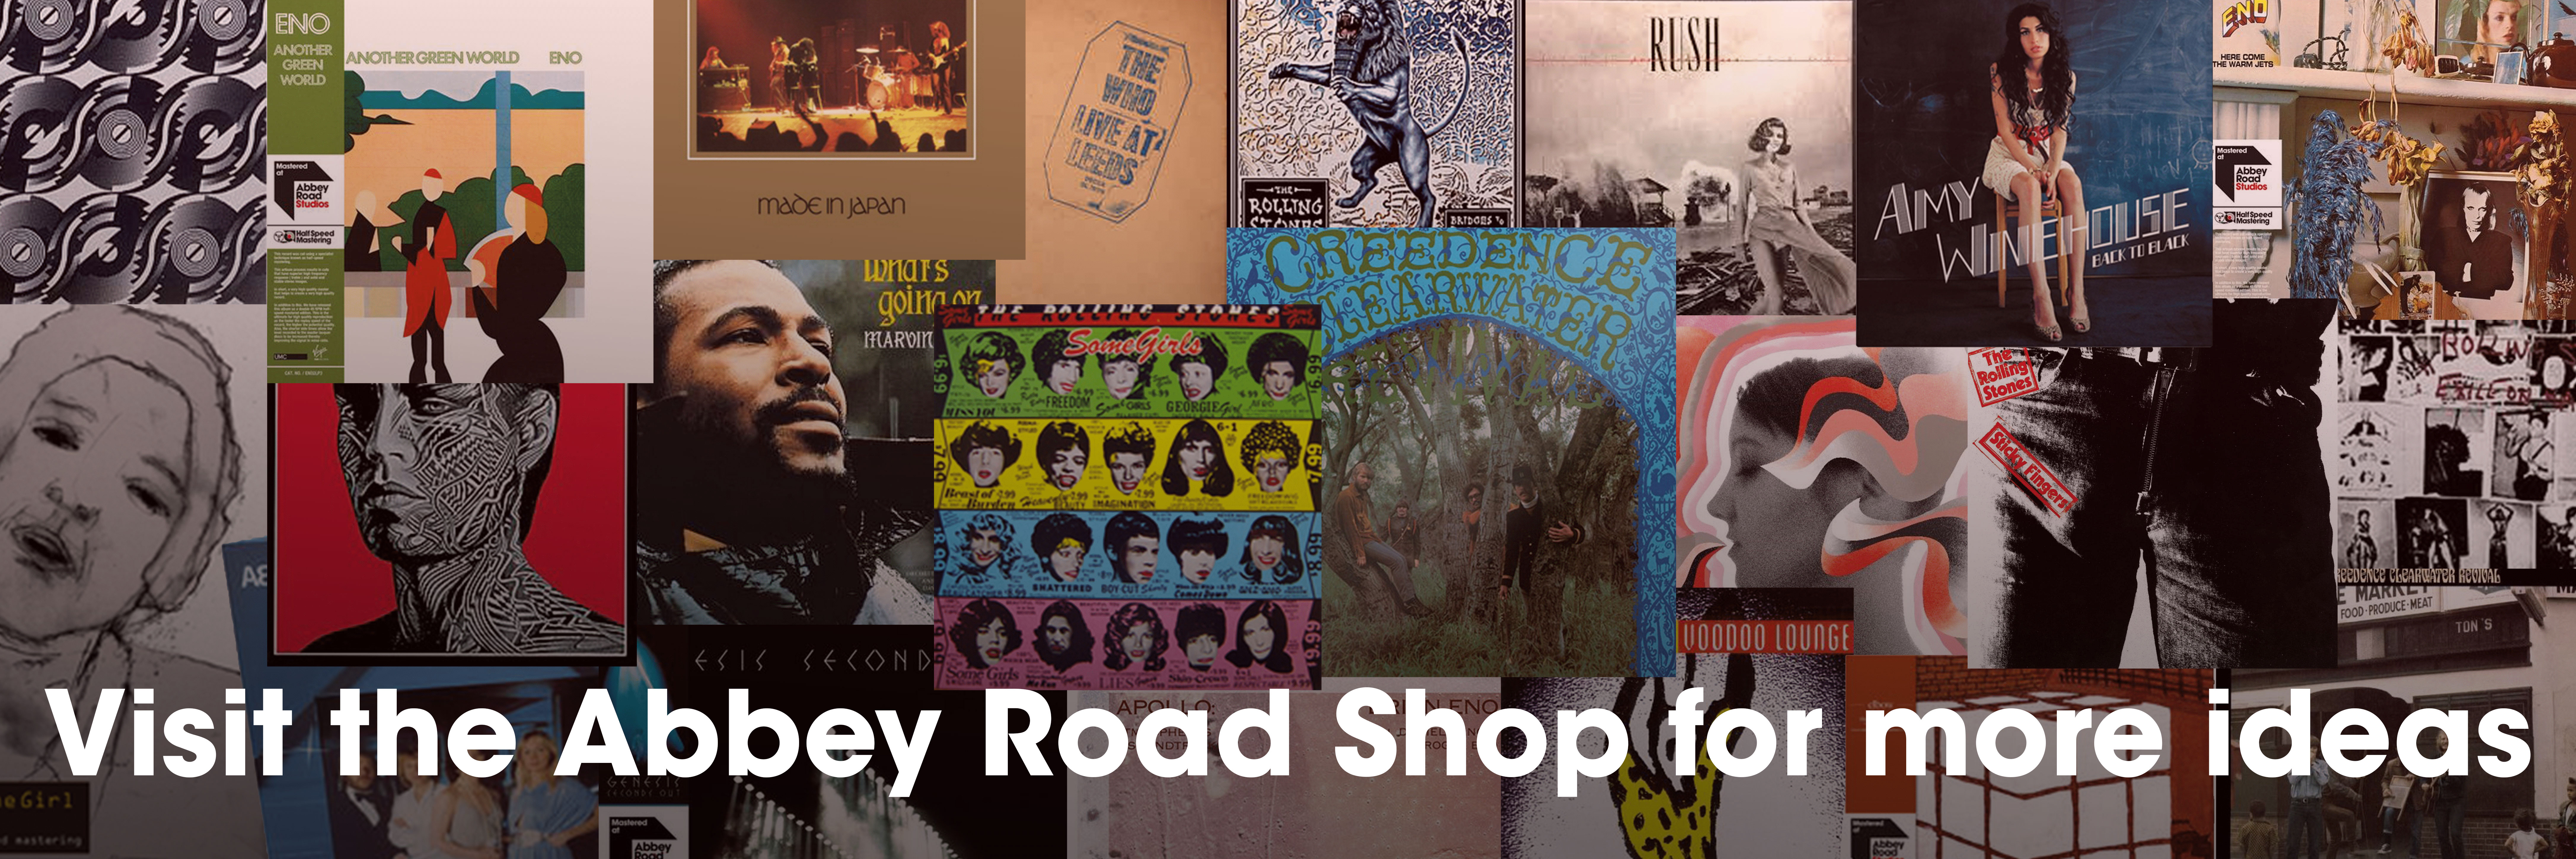 Visit the Abbey Road Shop for more ideas